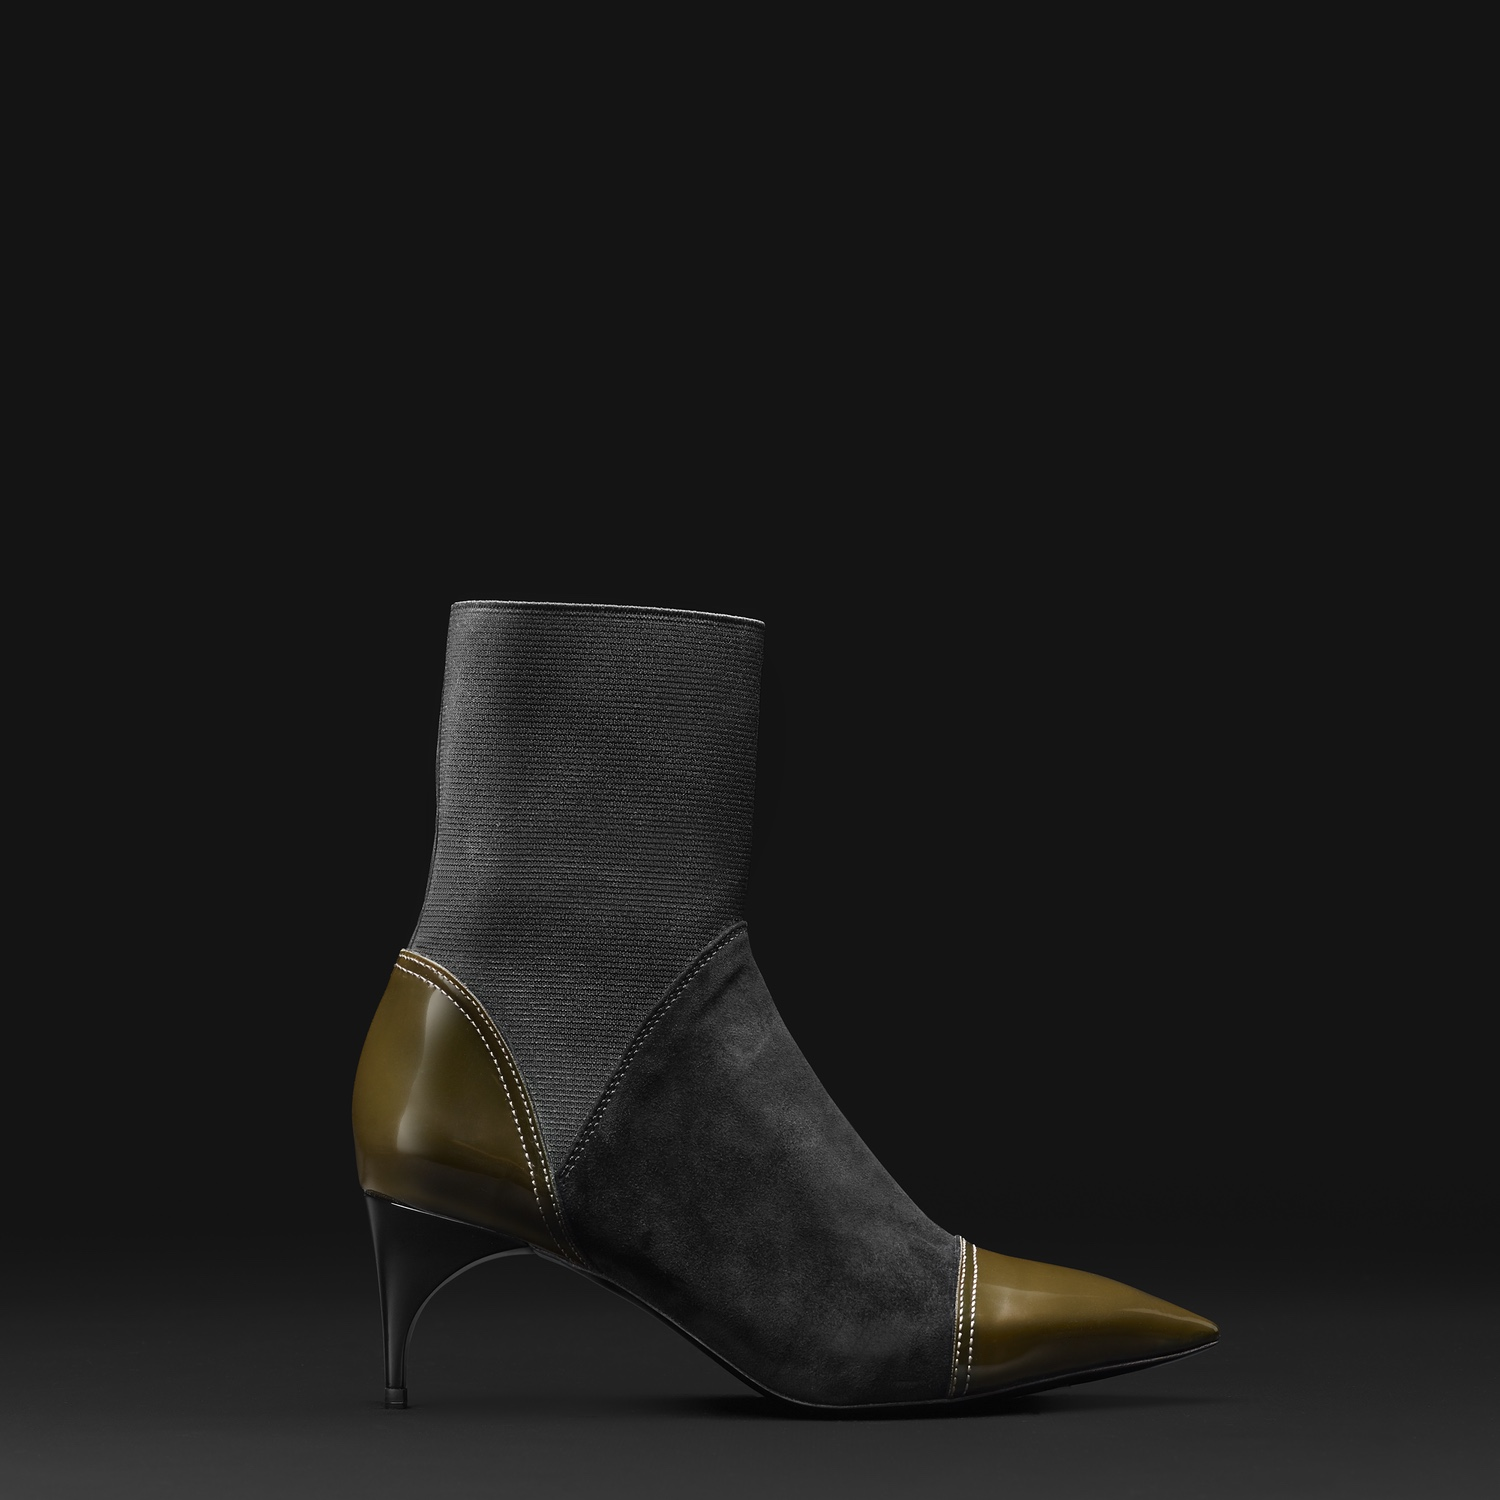 ALAINTONDOWSKI_FALLWINTER2015_SHOES_AT0042-B